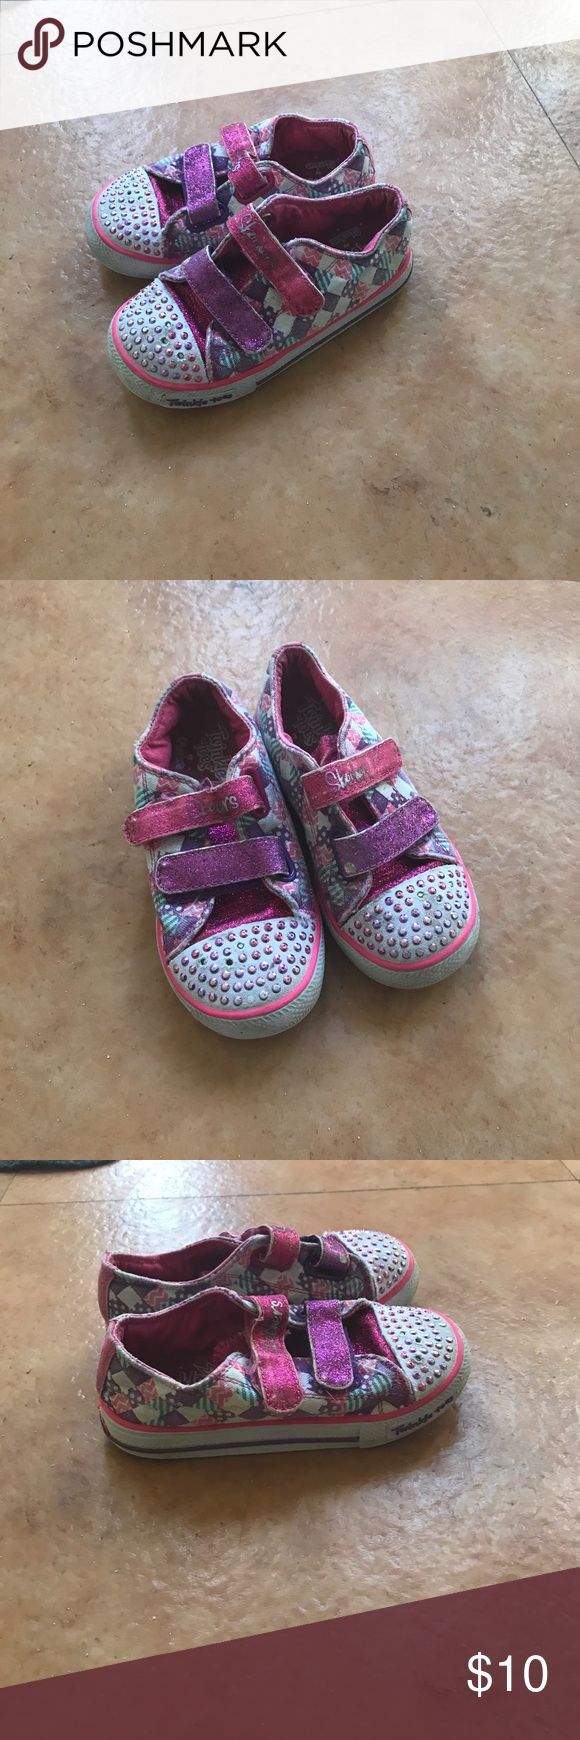 Cute shoes Skechers Twinkle Toes light up shoes for toddler girl Skechers Shoes Sneakers